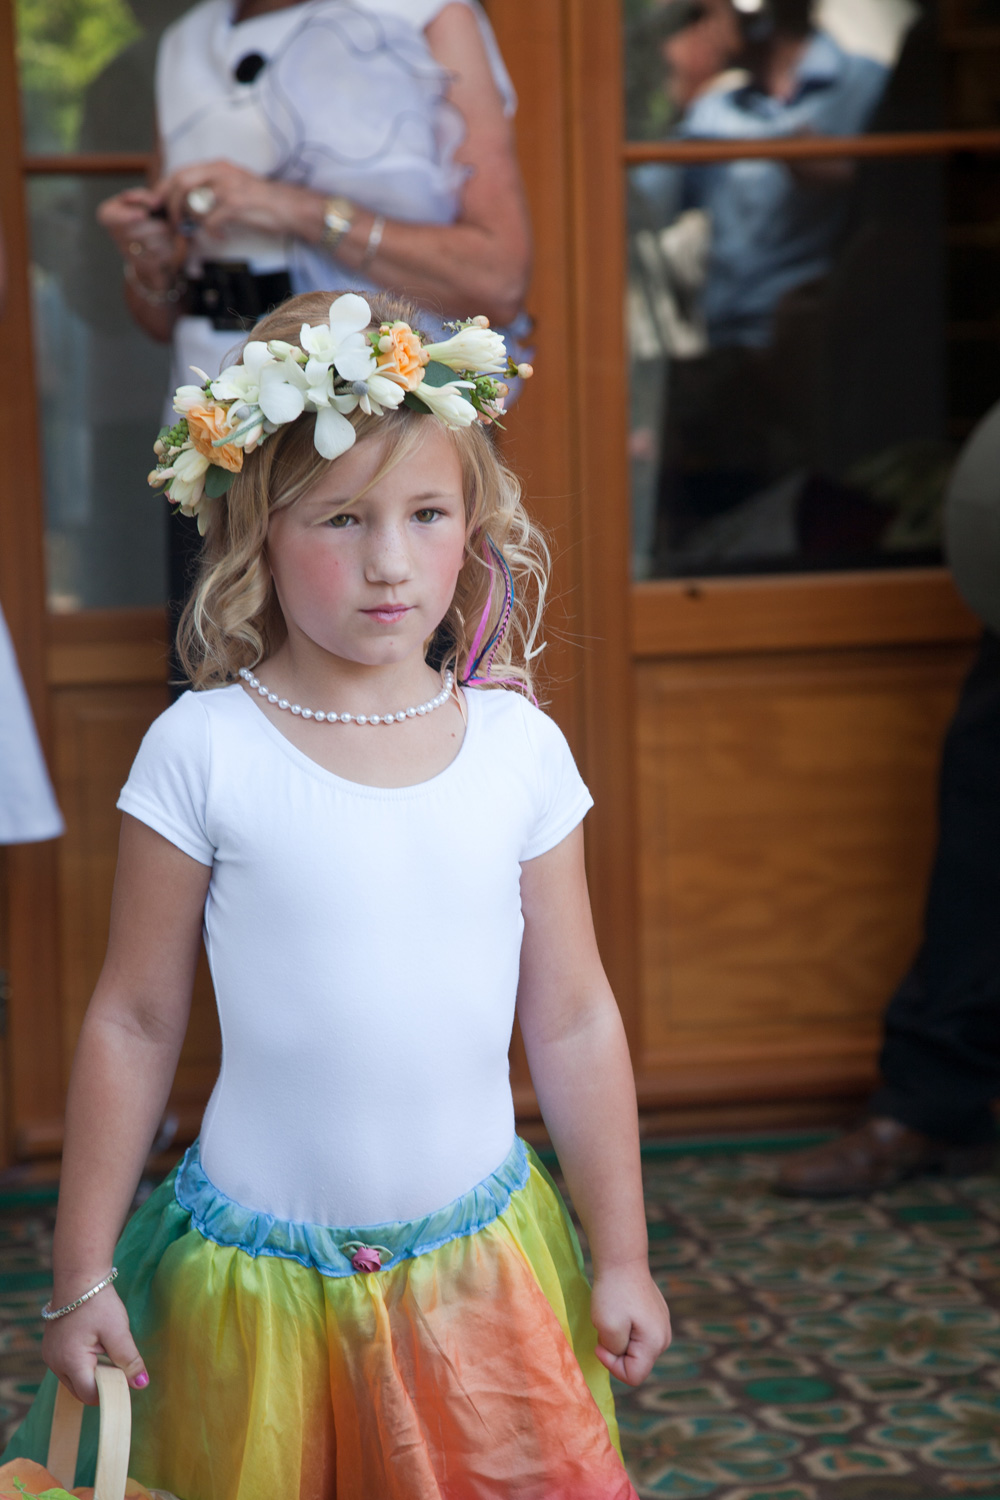 The flower girl prepares to walk down the aisle